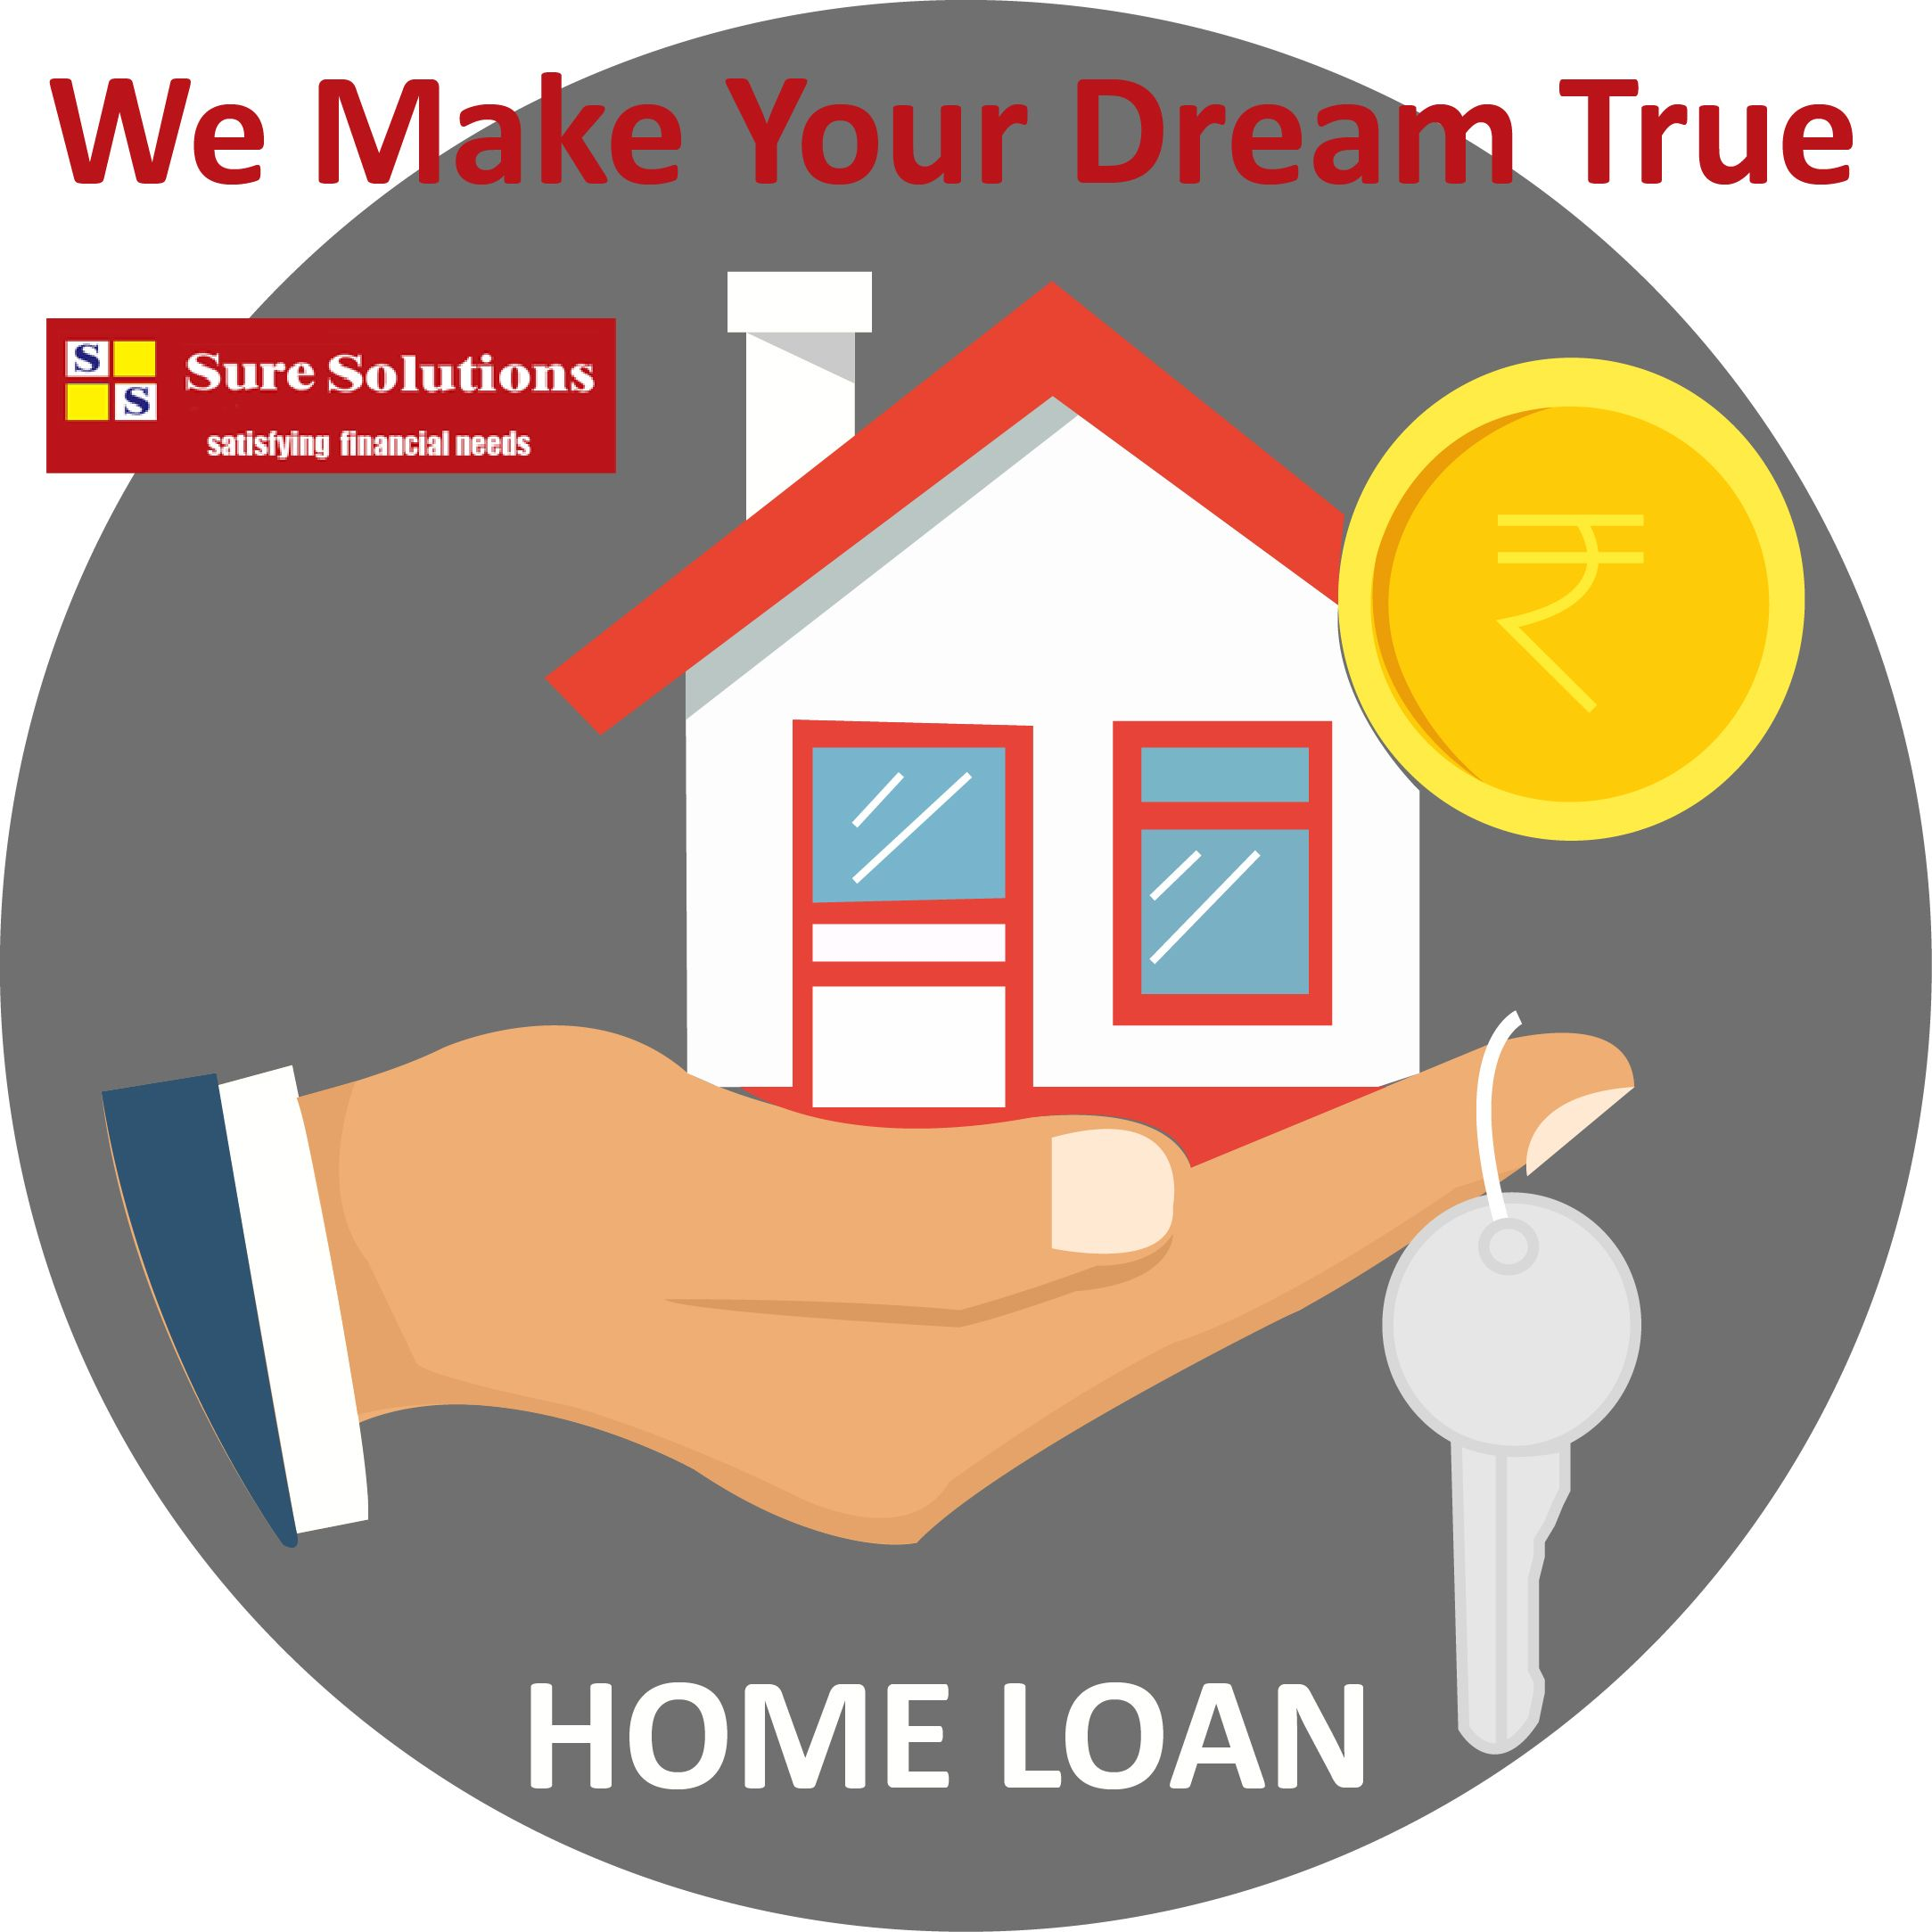 Sure Solutions A Home Loan Is A Smarter Way To Go About Buying A Home Of Your Own With Sure Solutions Home Loans The Home Of Y Home Loans Loan Personal